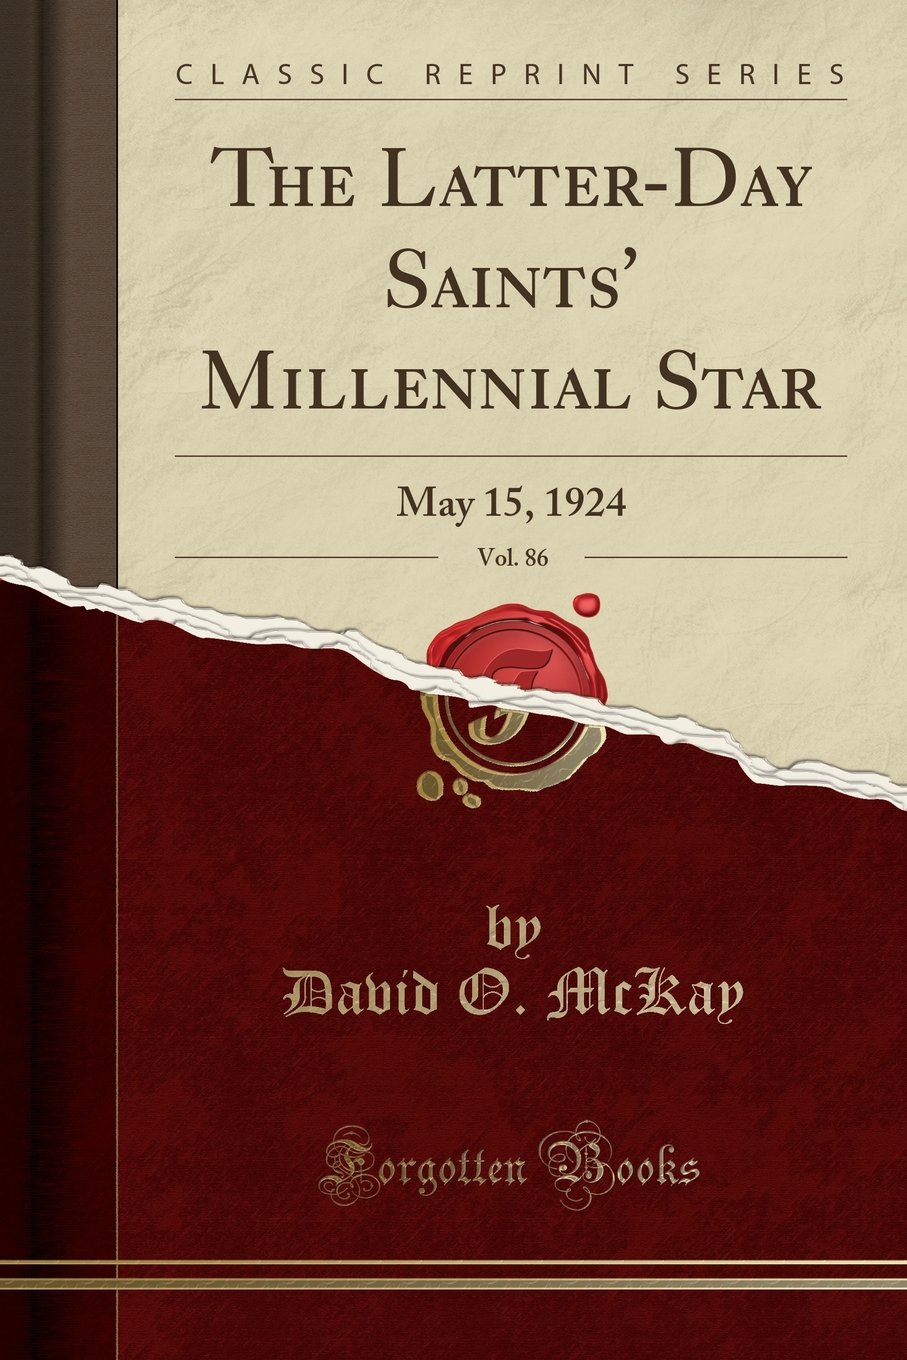 The Latter-Day Saints' Millennial Star, Vol. 86: May 15, 1924 (Classic Reprint) ebook